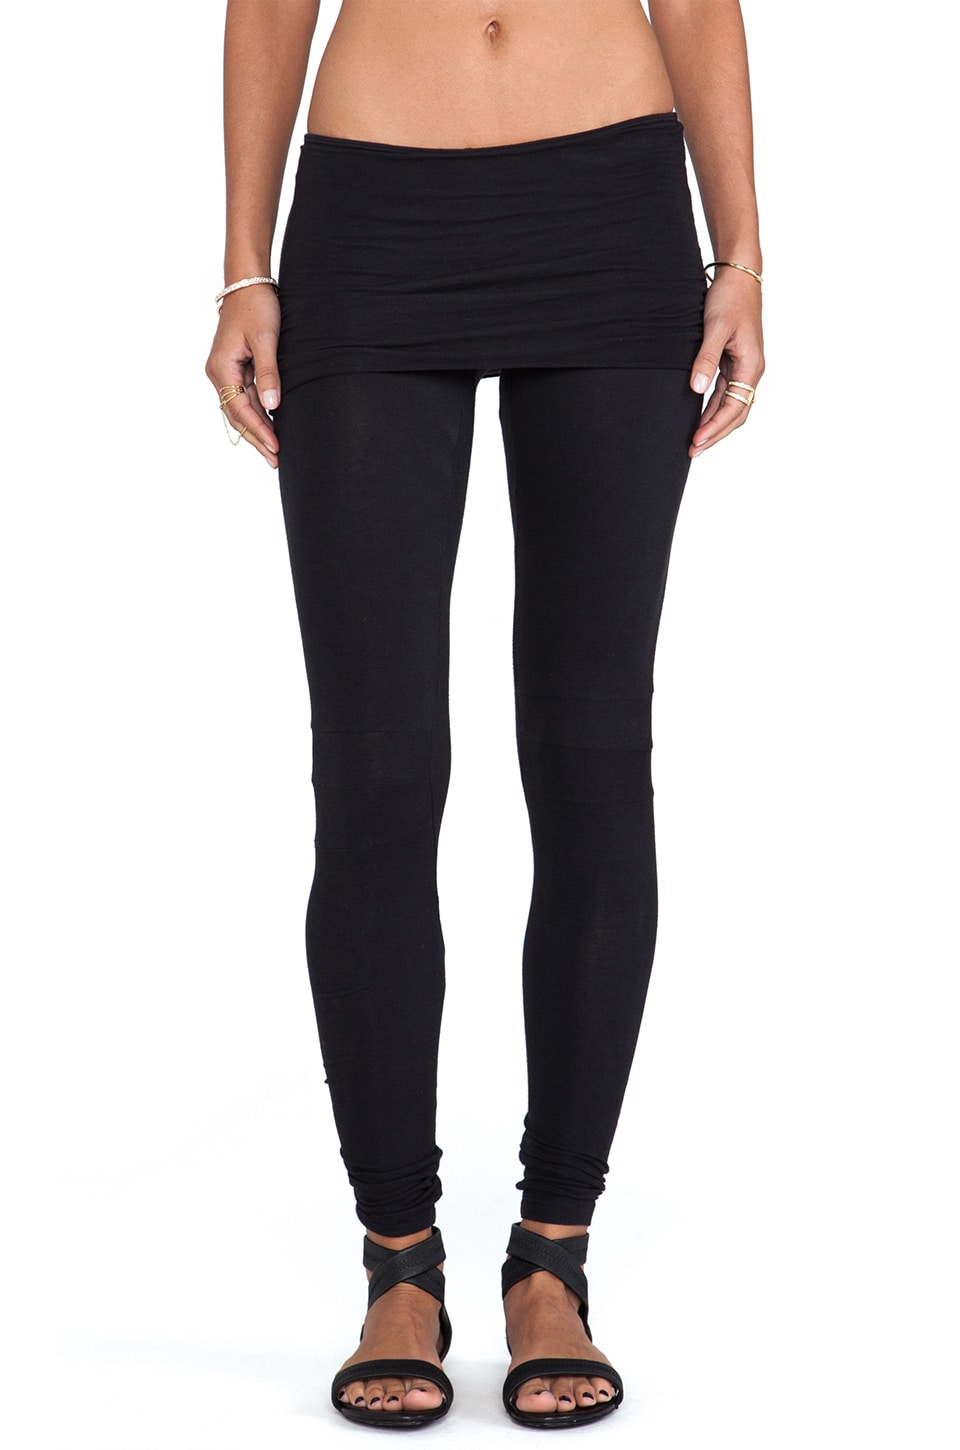 Nightcap Neon Foldover Legging in Black